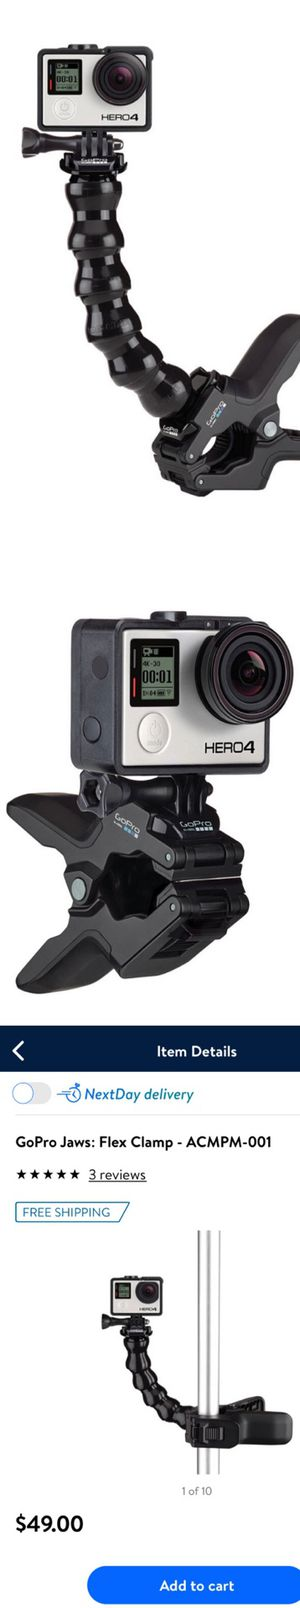 GoPro JAWS Flex Clamp (DOES NOT INCLUDE CAMERA) for Sale in Houston, TX